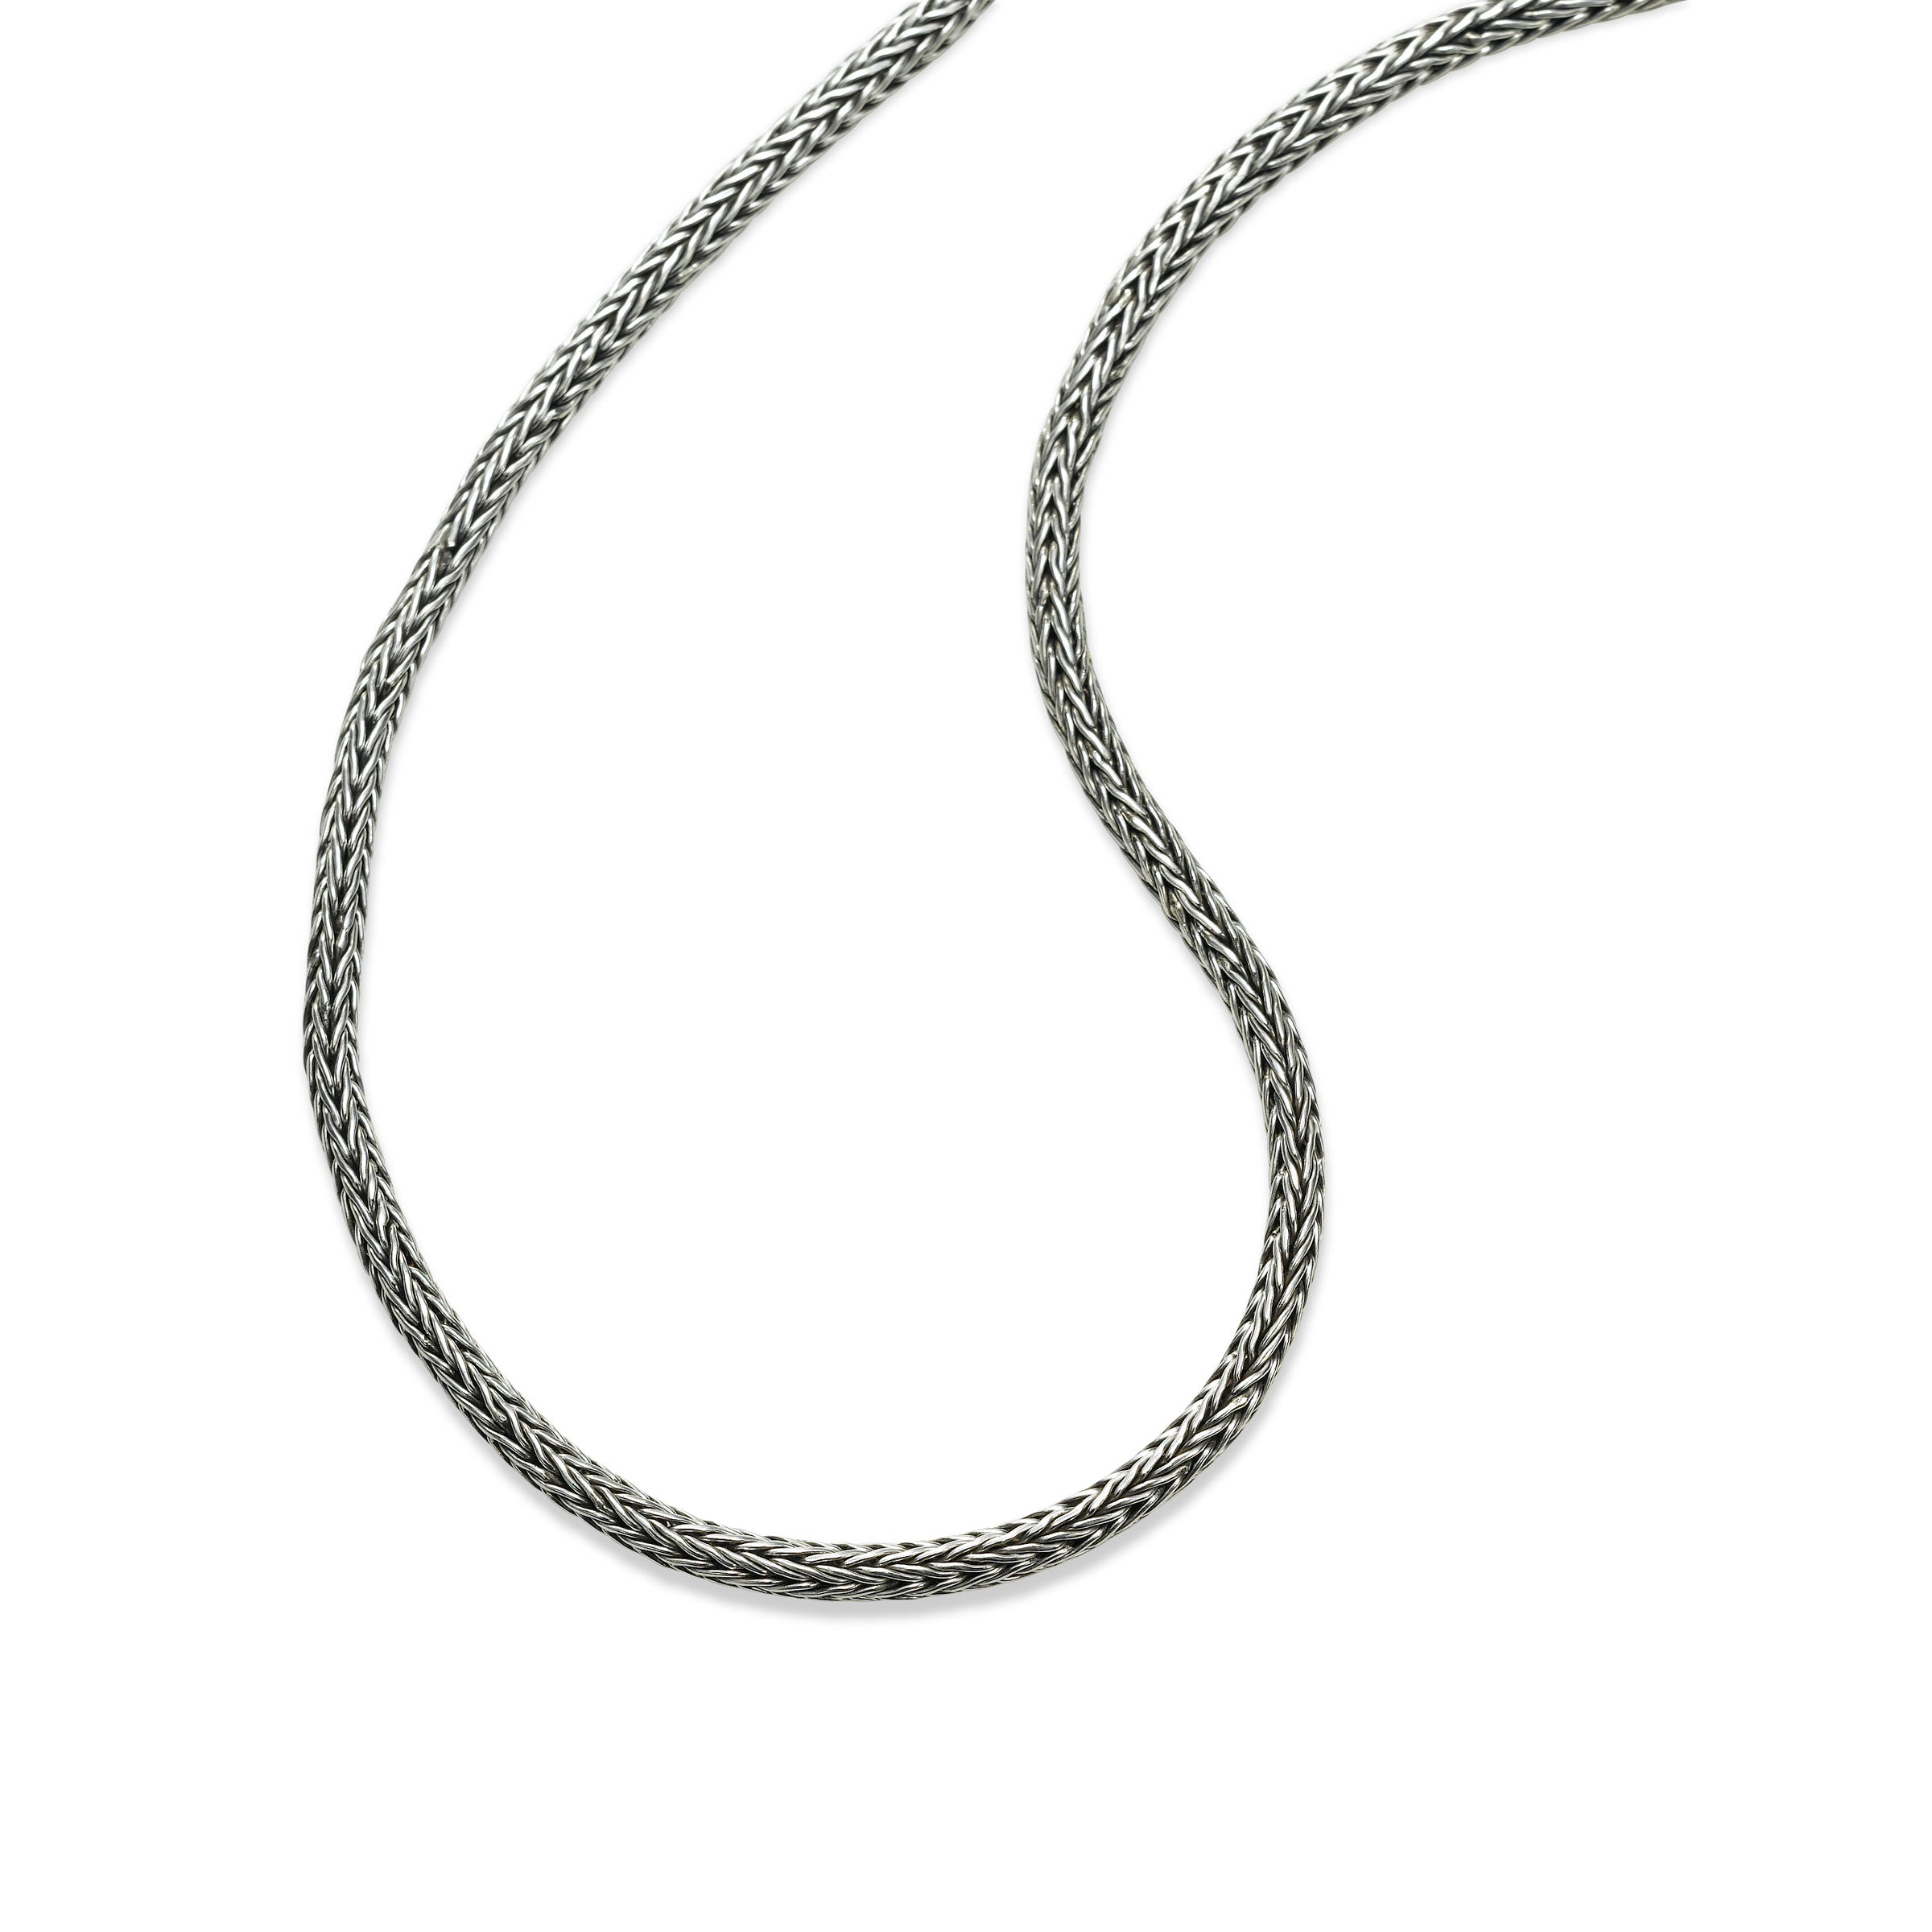 Tulang Naga Woven Chain, 20 Inches, Sterling Silver